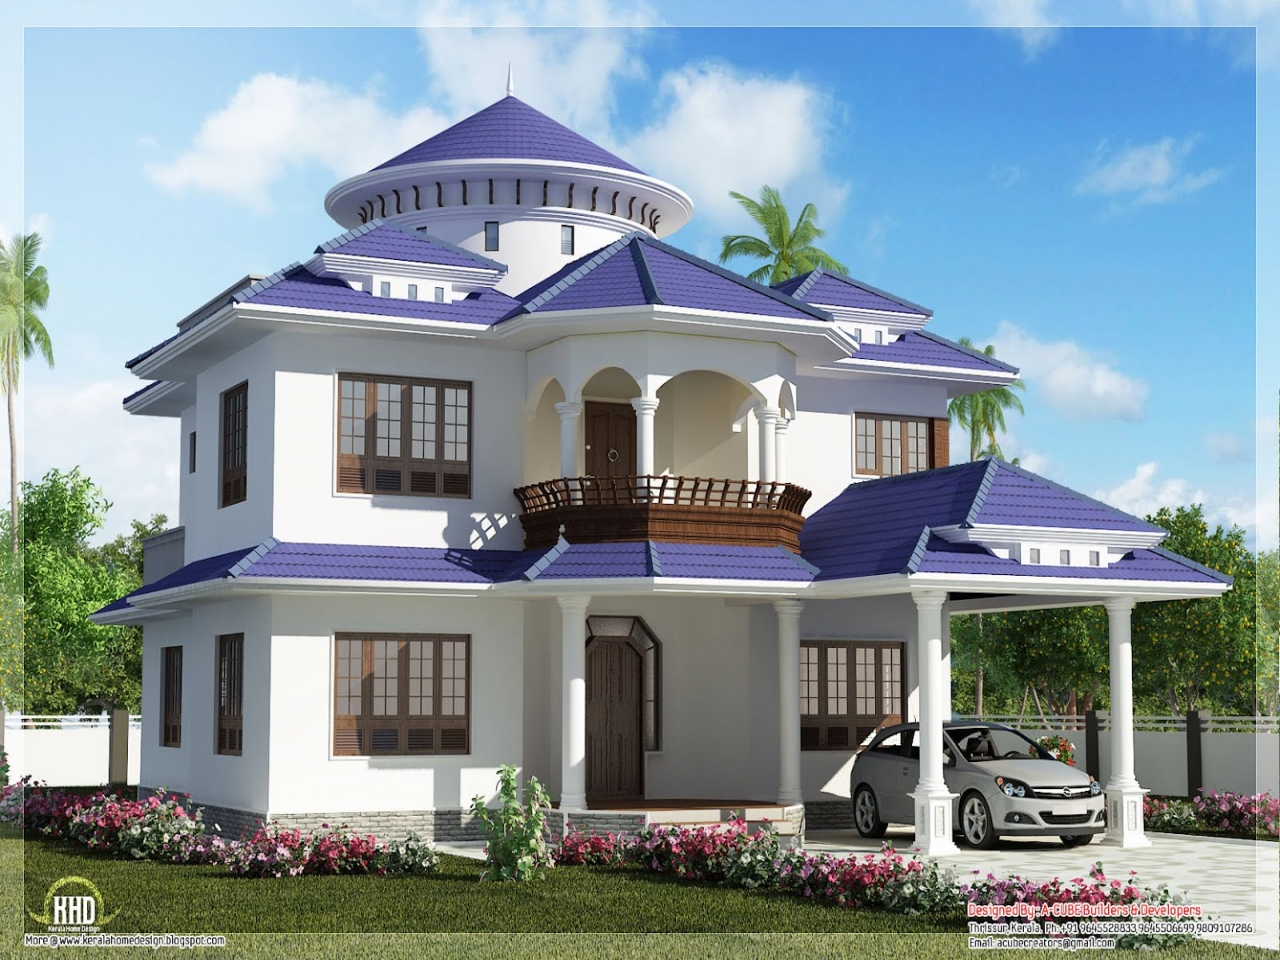 Dream home house design future home house design for Futuristic home designs